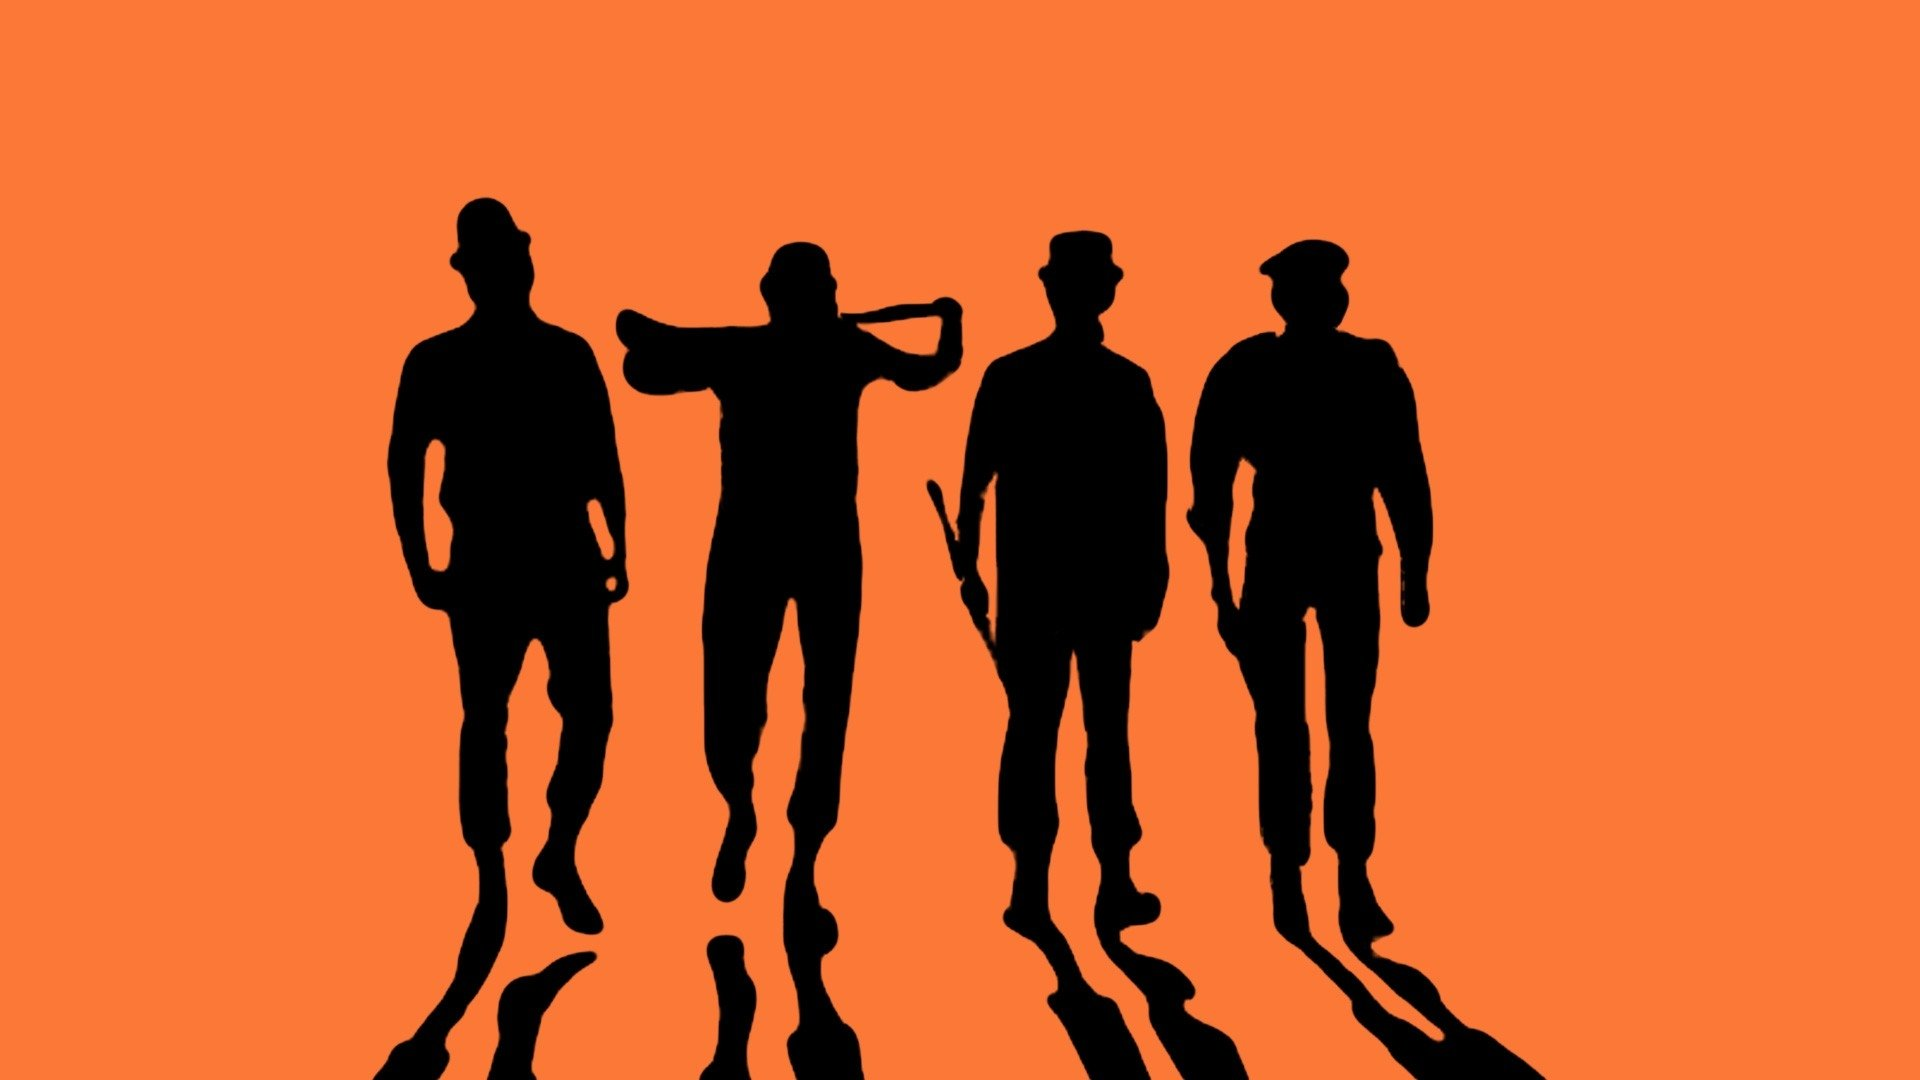 A Clockwork Orange Wallpaper